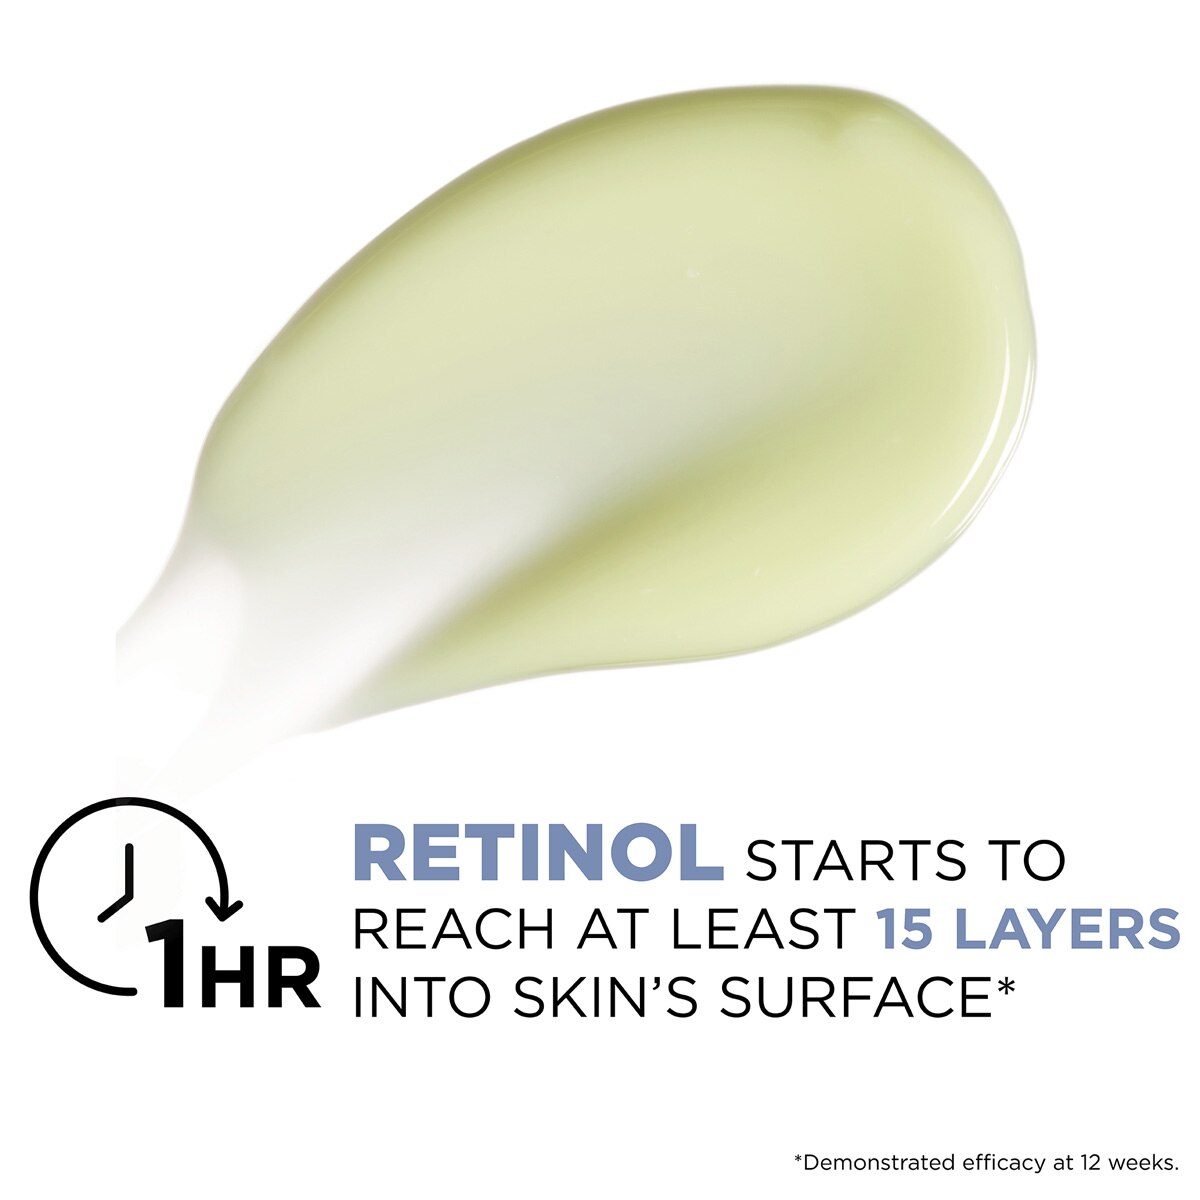 HELLO RESULTS WRINKLE-REDUCING DAILY RETINOL TRAVEL SIZE 15 ML